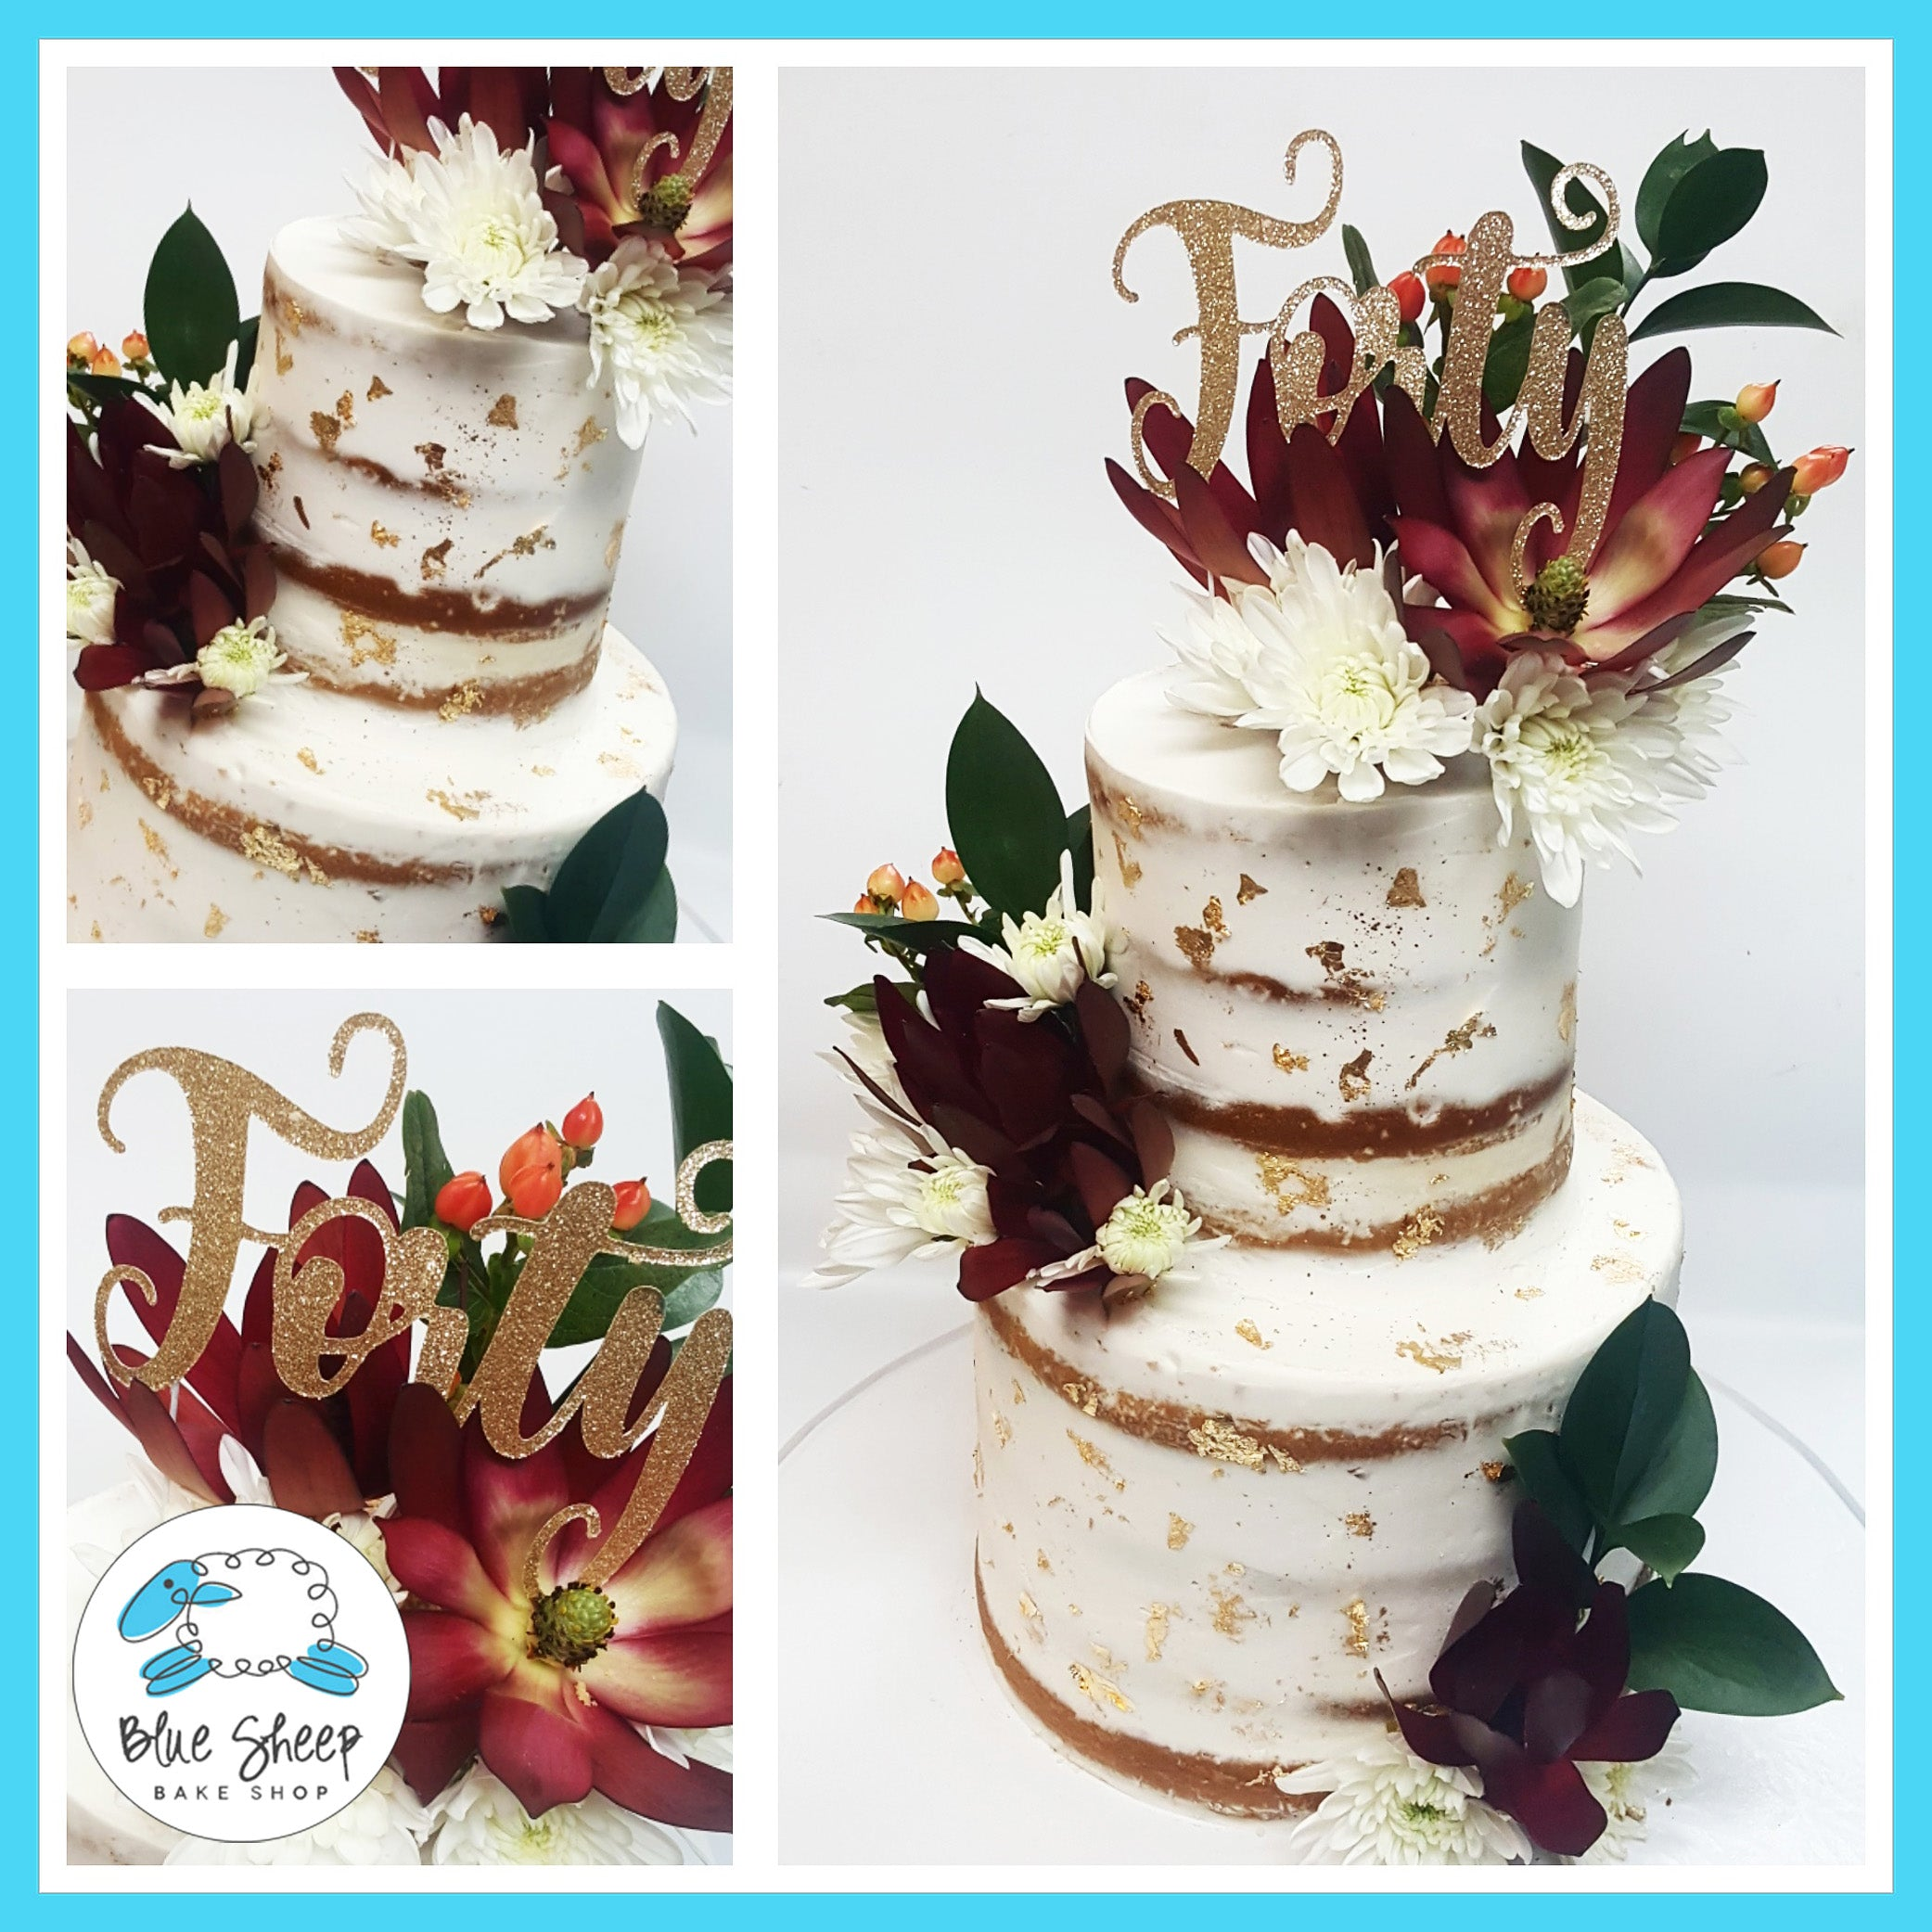 Tiered Naked Wedding Cake With Fall Blooms | Blue Sheep Bake Shop